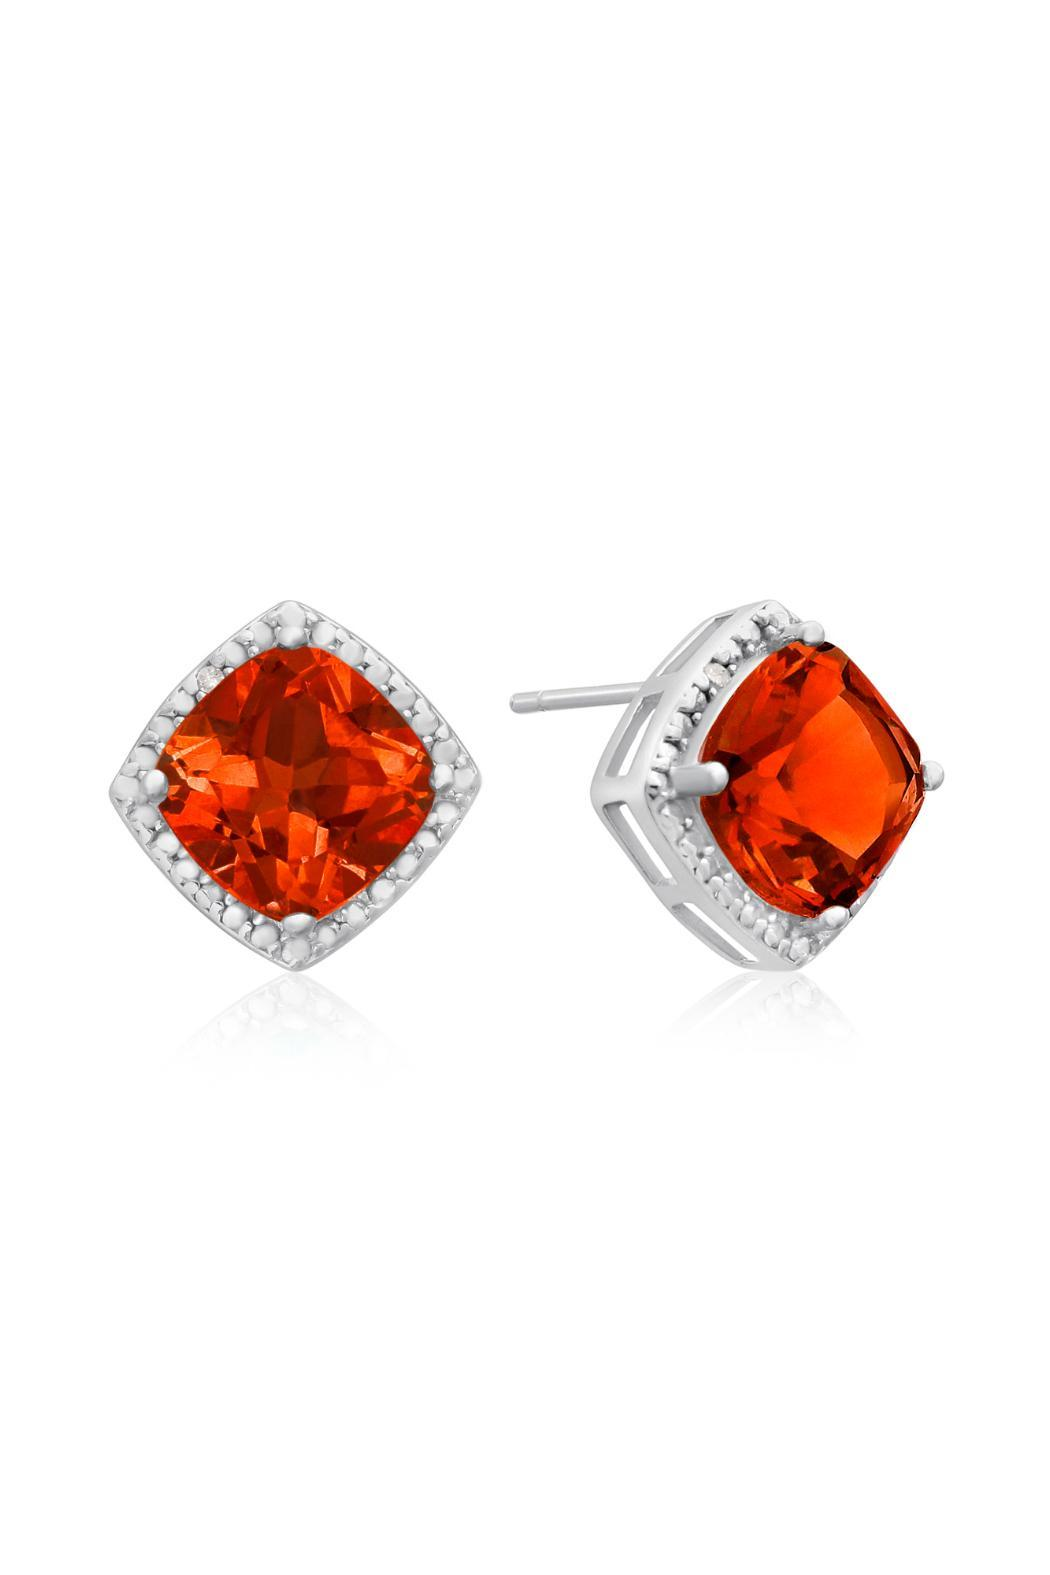 gold diamonds reports in natural gia carats and pad sapphires with sapphire set white jupitergem unheated aigs padparadscha earrings